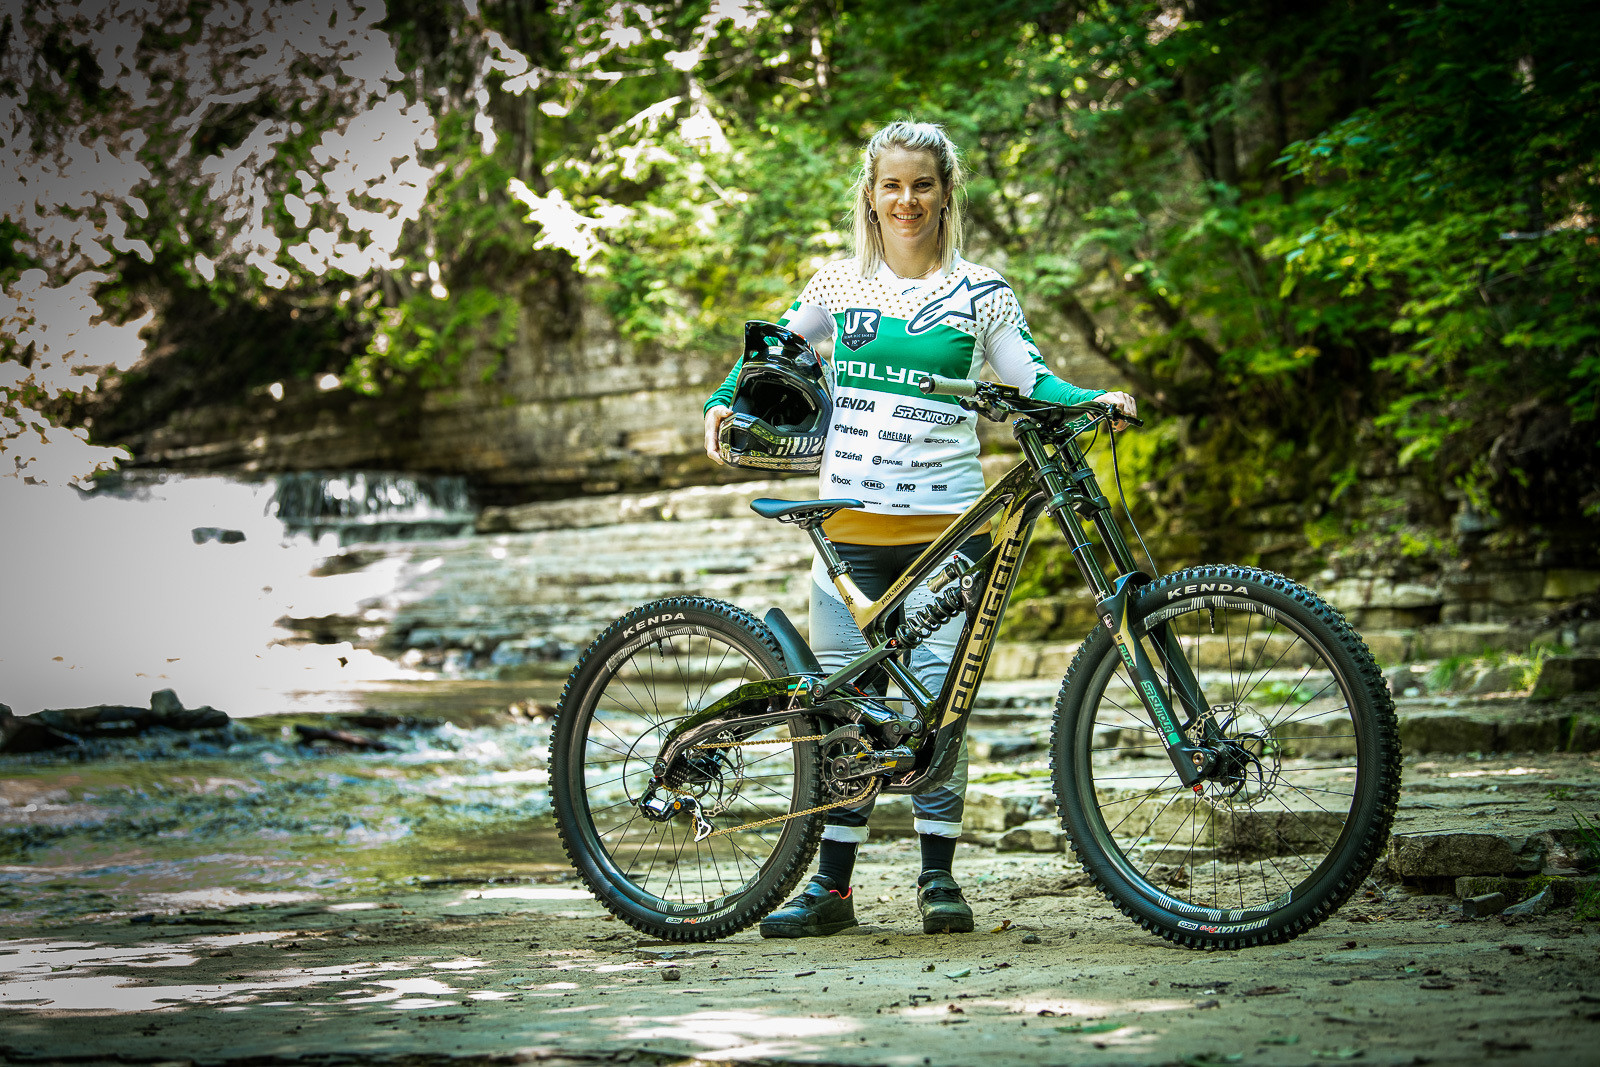 Tracey Hannah with her World Champs Polygon DH Race Bike - Tracey and Mick Hannah's World Champs Polygon DH Race Bikes - Mountain Biking Pictures - Vital MTB